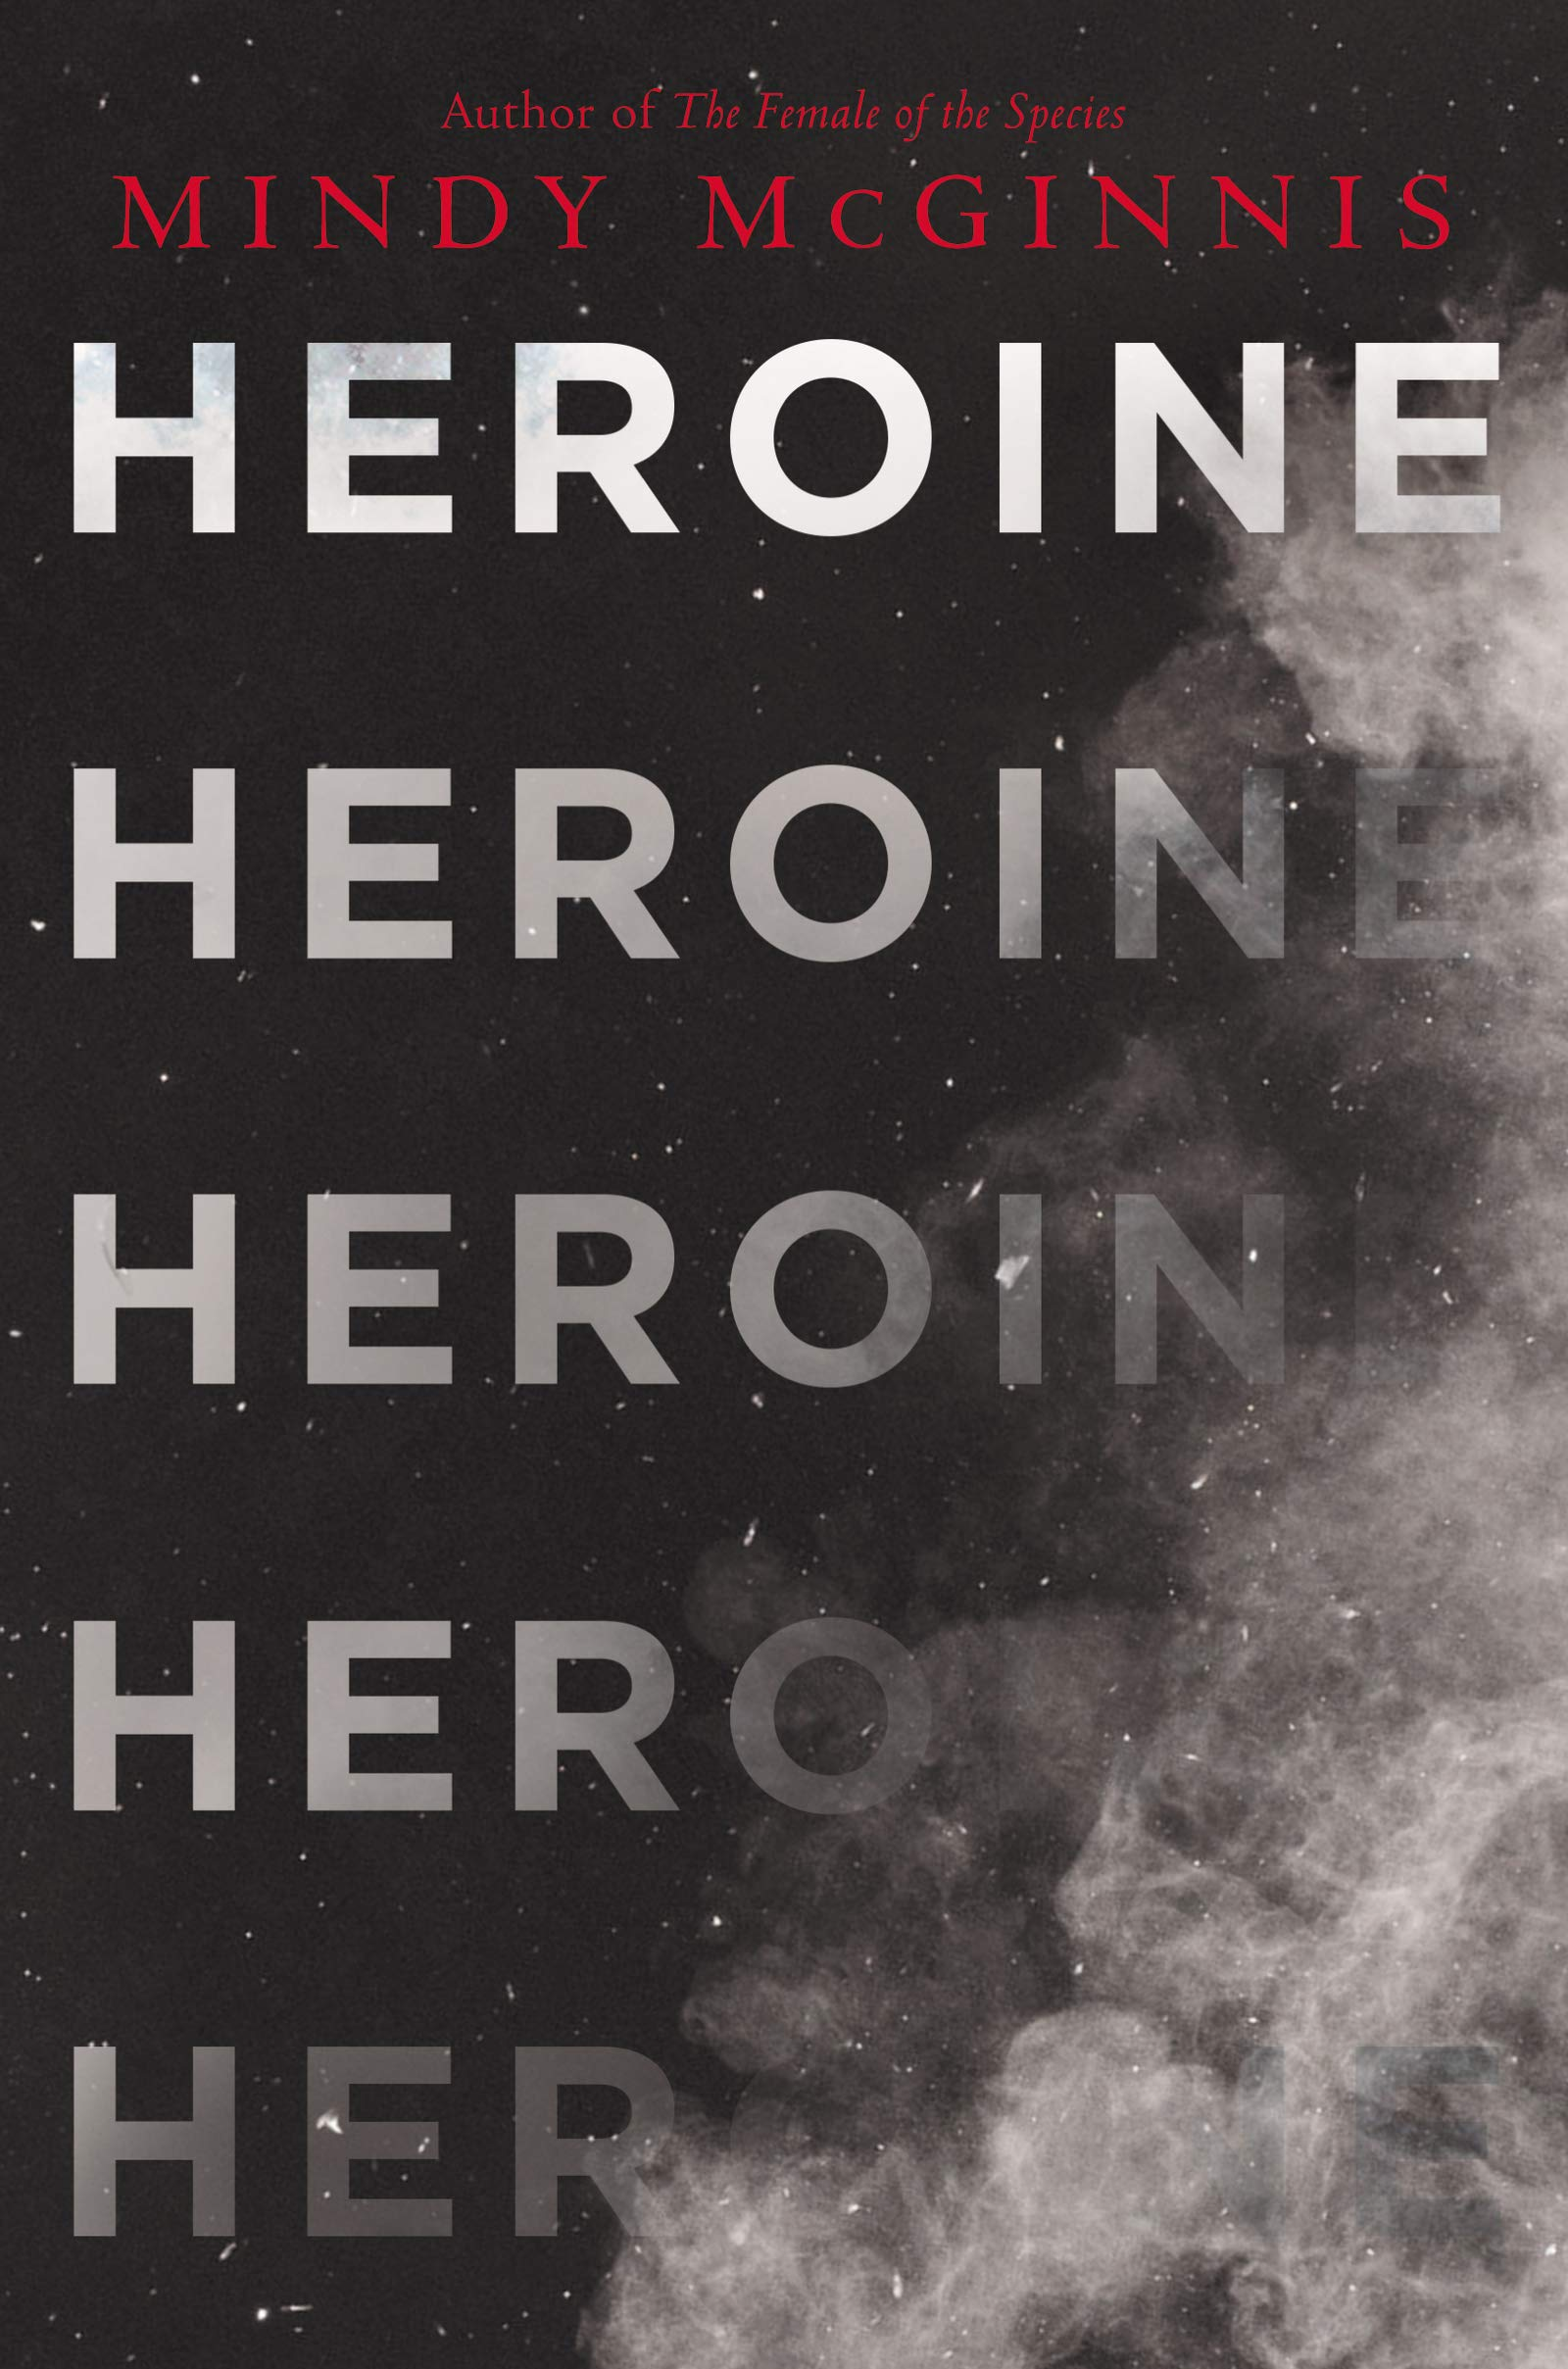 Black cover with the word Heroine repeatedly turning into dust